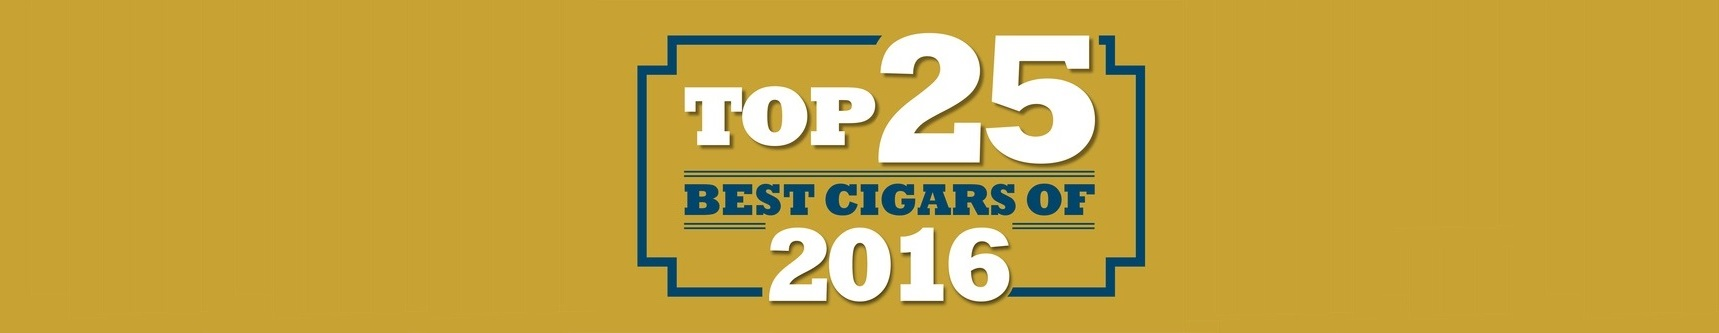 Top 25 Best Cigars of 2016